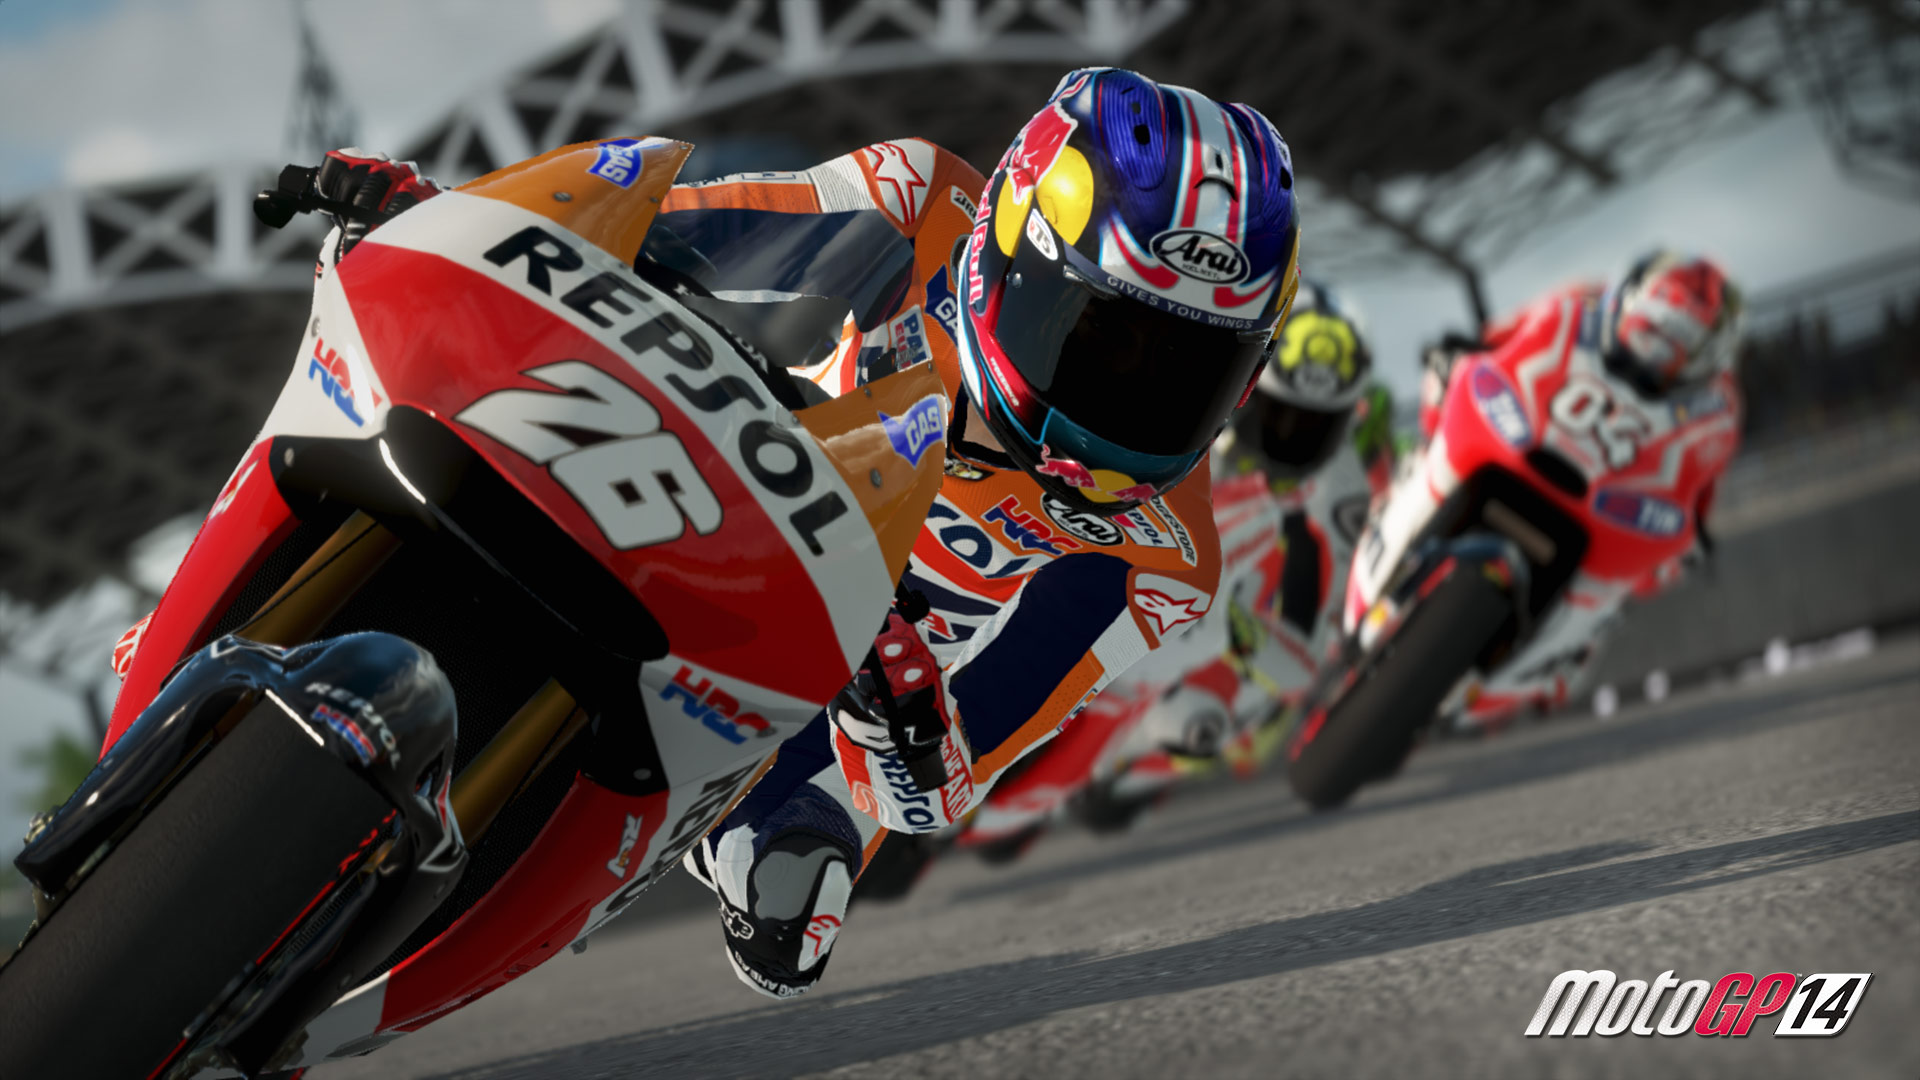 MotoGP 14 PS4 Review: Goes Better than it Shows | USgamer